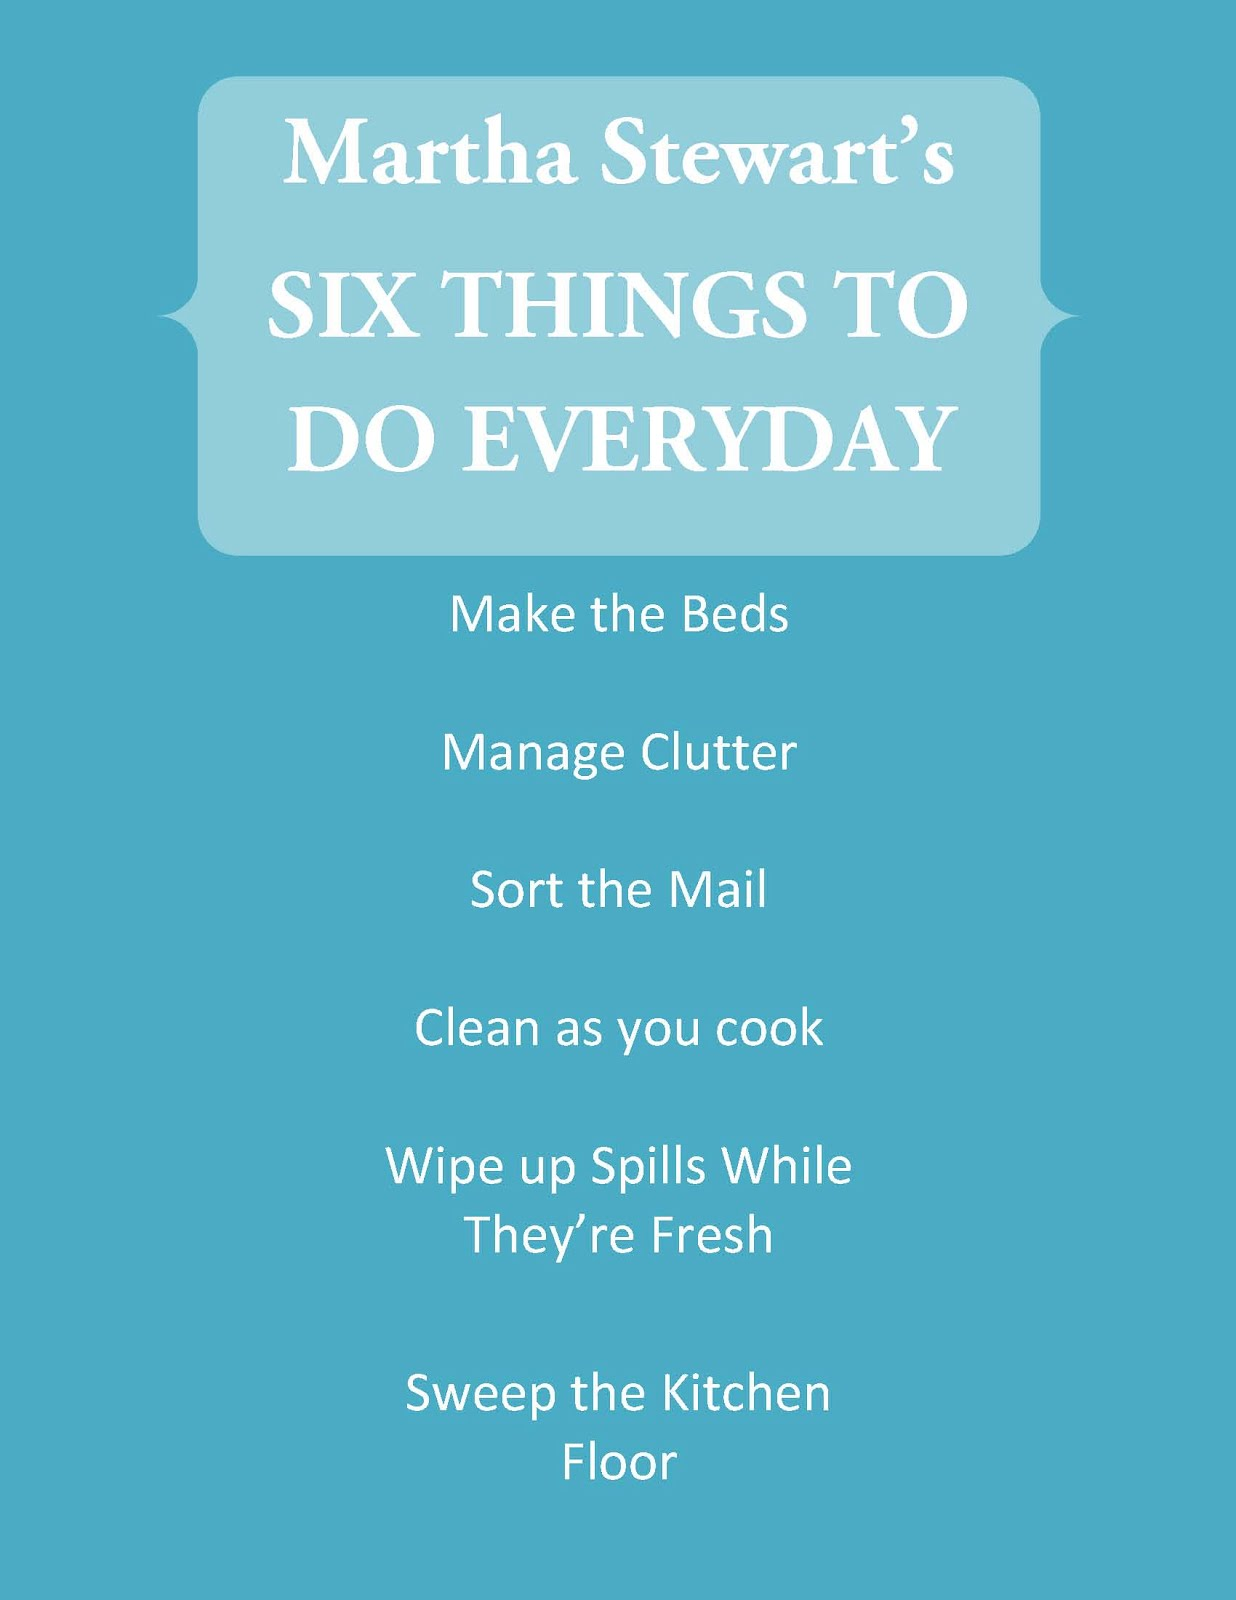 HomeKeeping For All: Cleaning Routine: 6 Things To Do Everyday